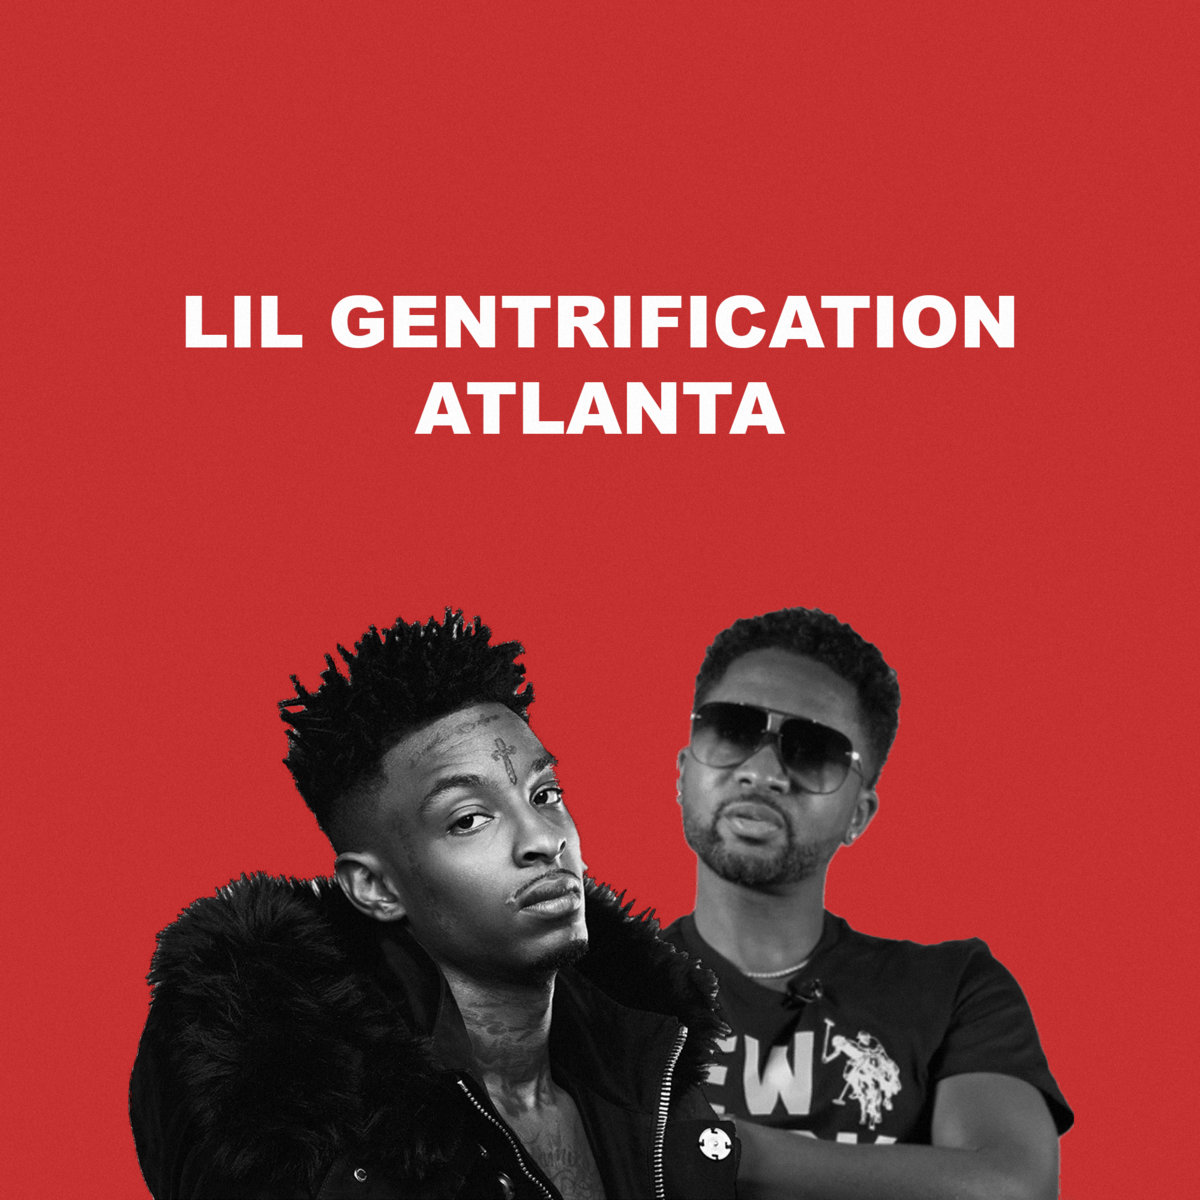 From Atlanta By Lil Gentrification